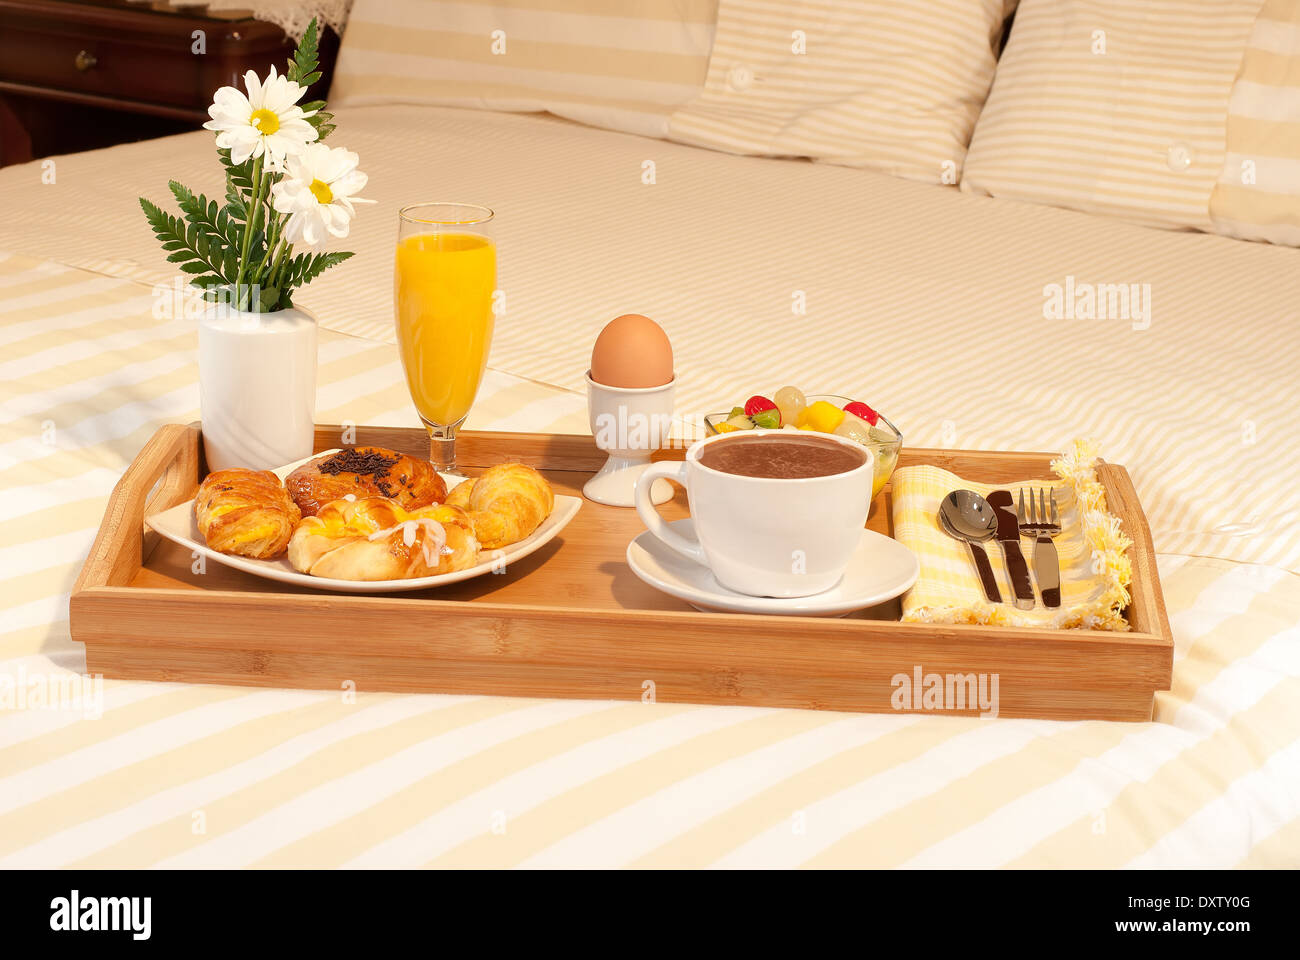 full breakfast tray with flowers on the bed stock photo, royalty